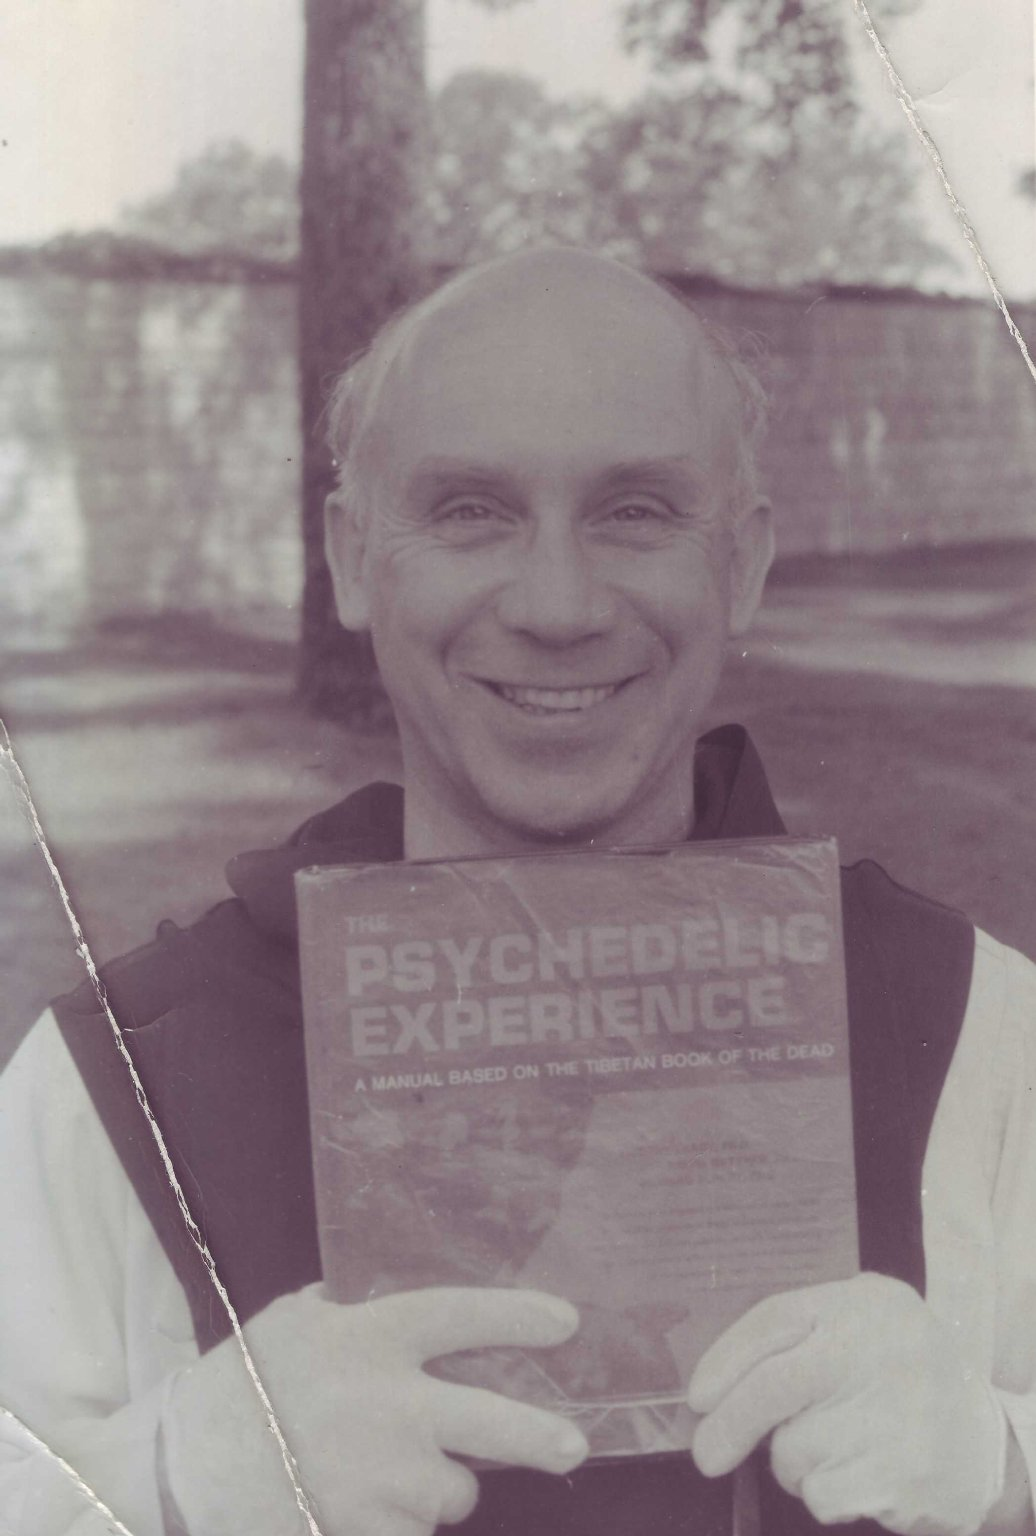 Father Thomas Merton outside of his Shangri-la hermitage, holding a copy of The Psychedelic Experience by Timothy Leary, Ralph Metzner, and Richard Alpert, given to him that day by Rabbi Zalman Schachter, ca. 1963.